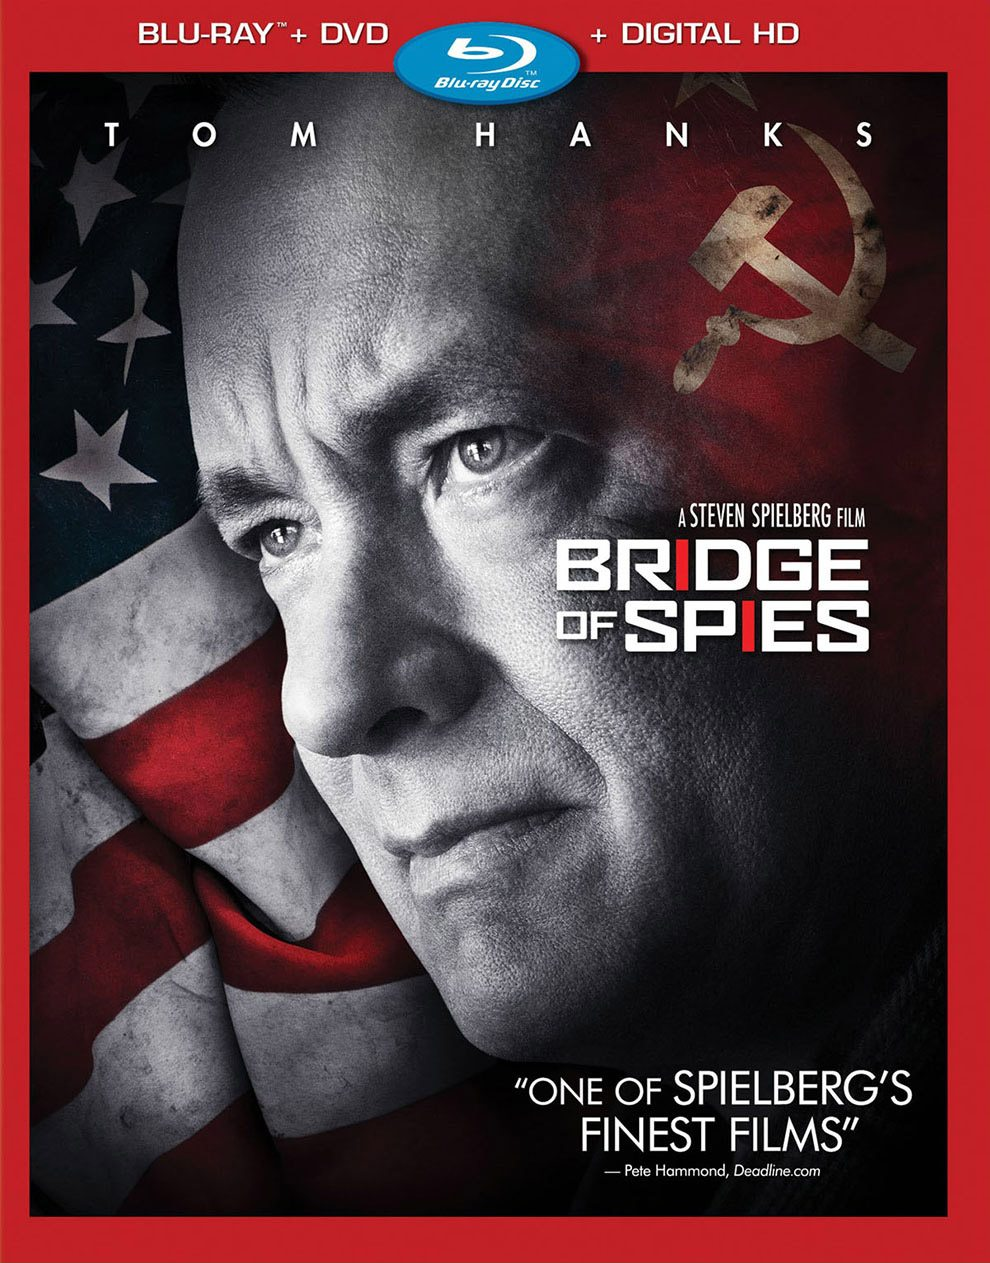 'Bridge of Spies' Coming to Blu-Ray